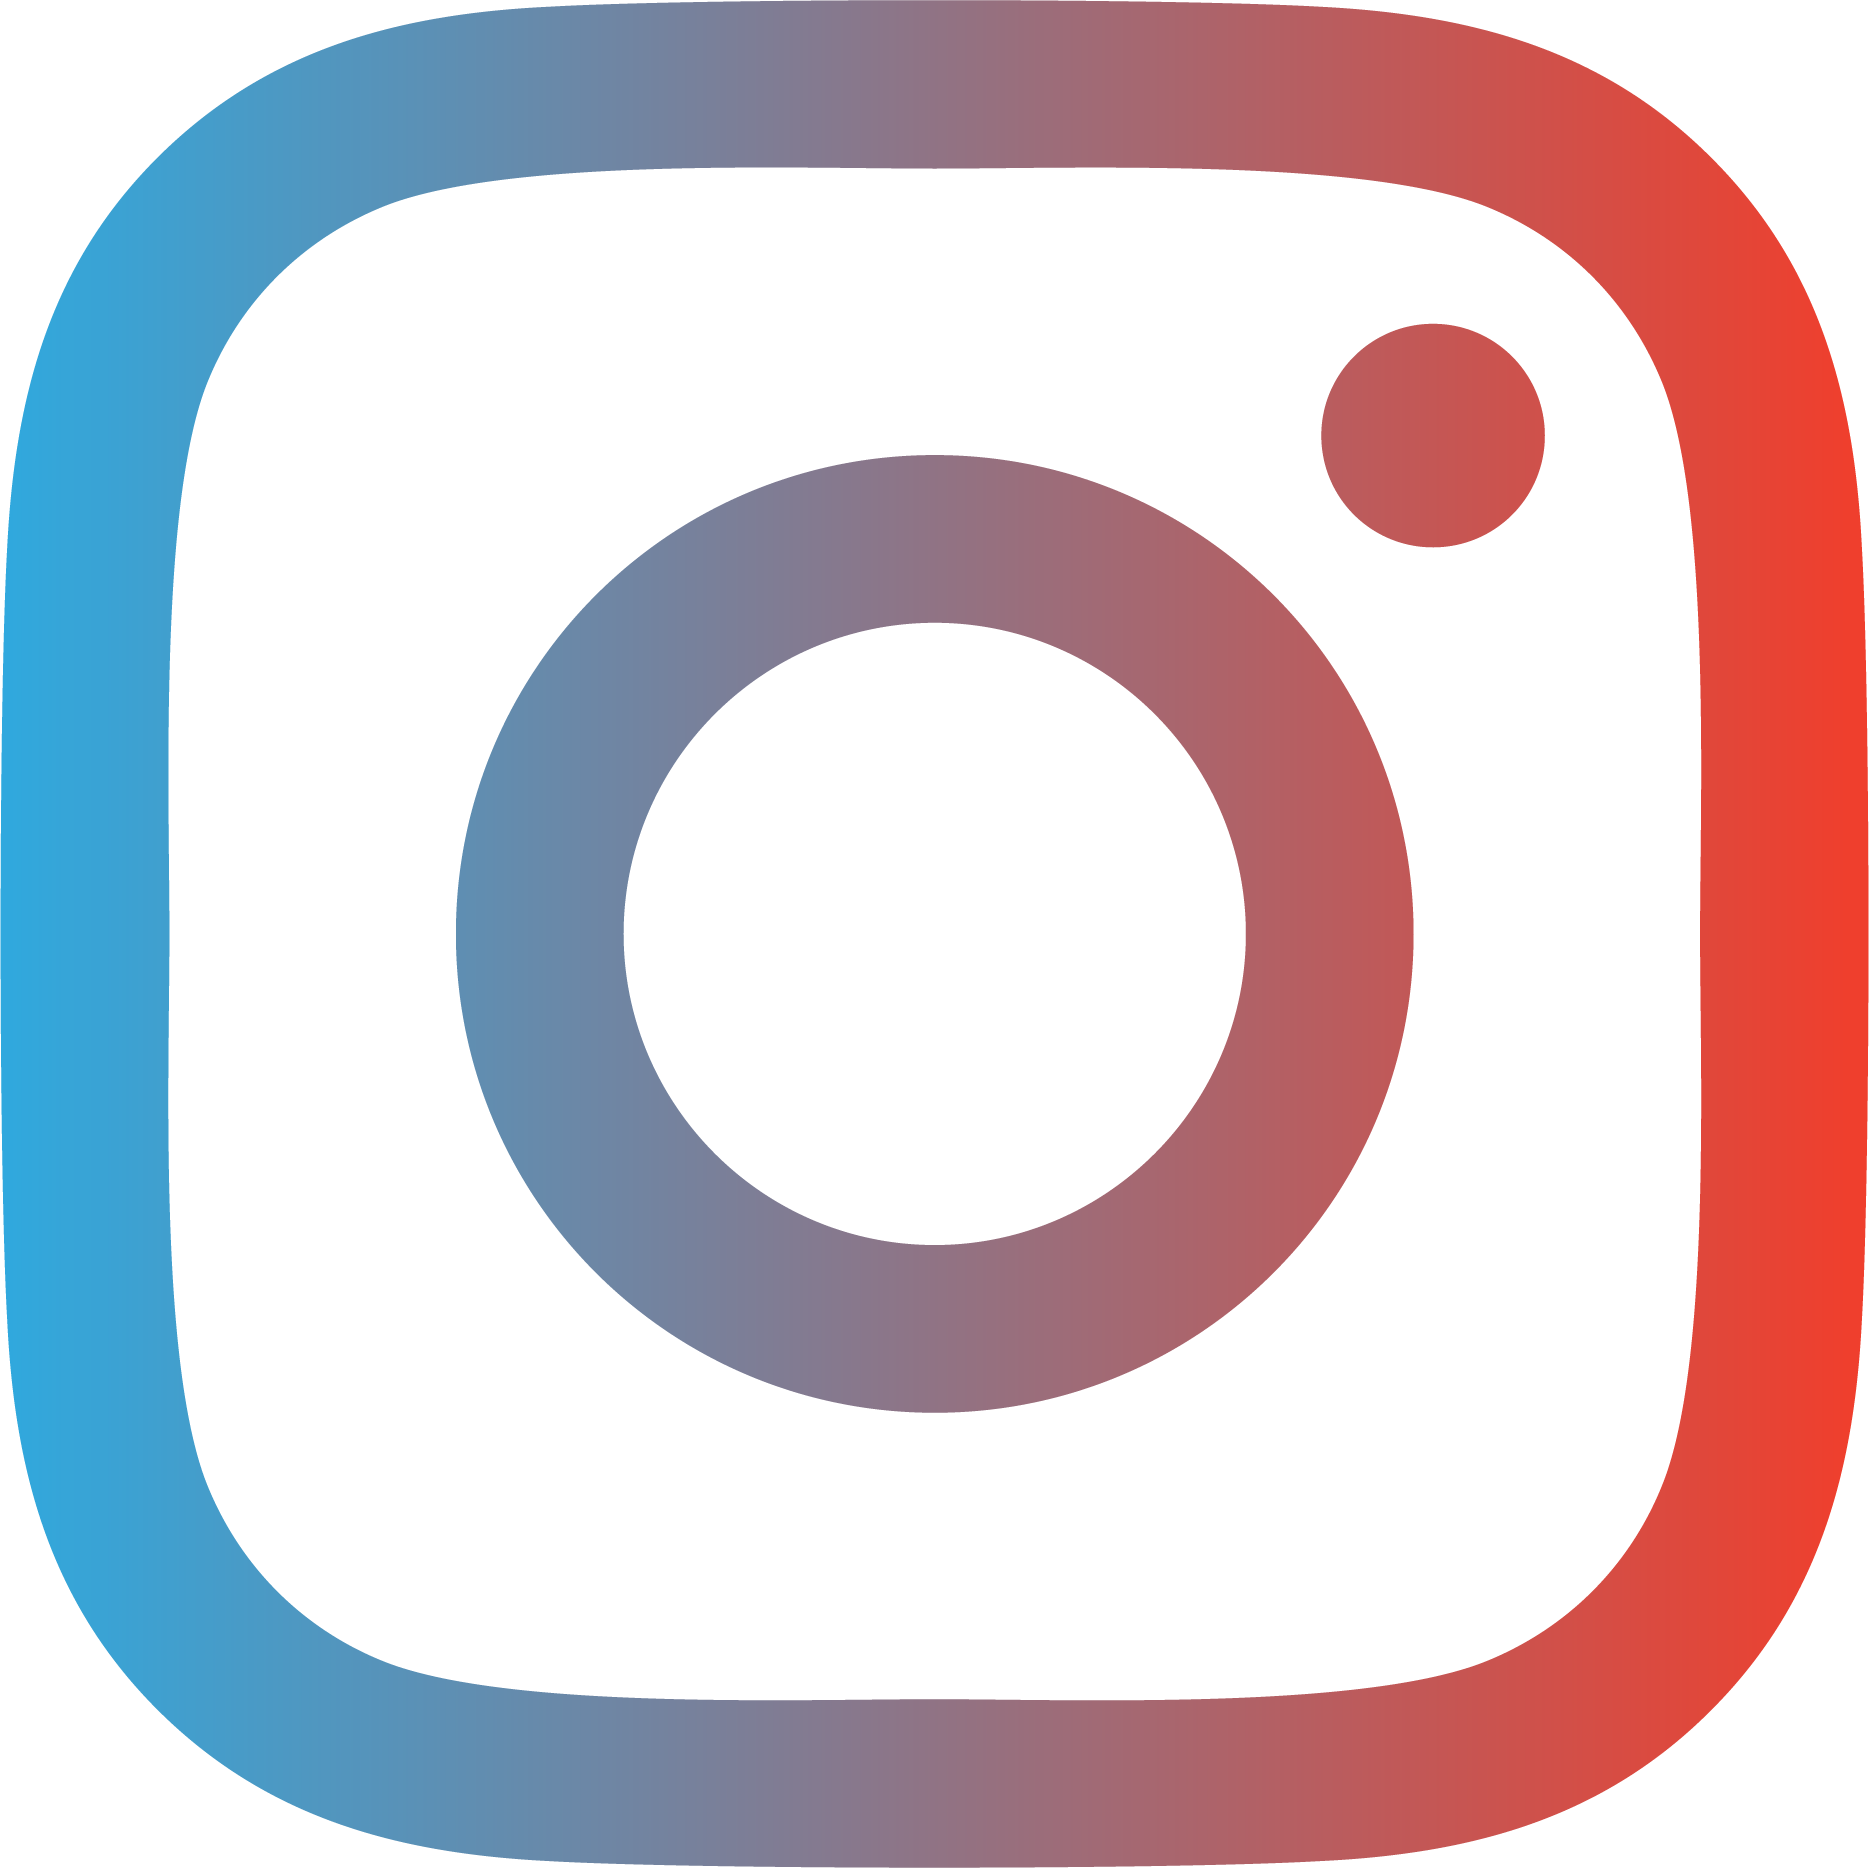 Instagram icon in a blue and red gradient